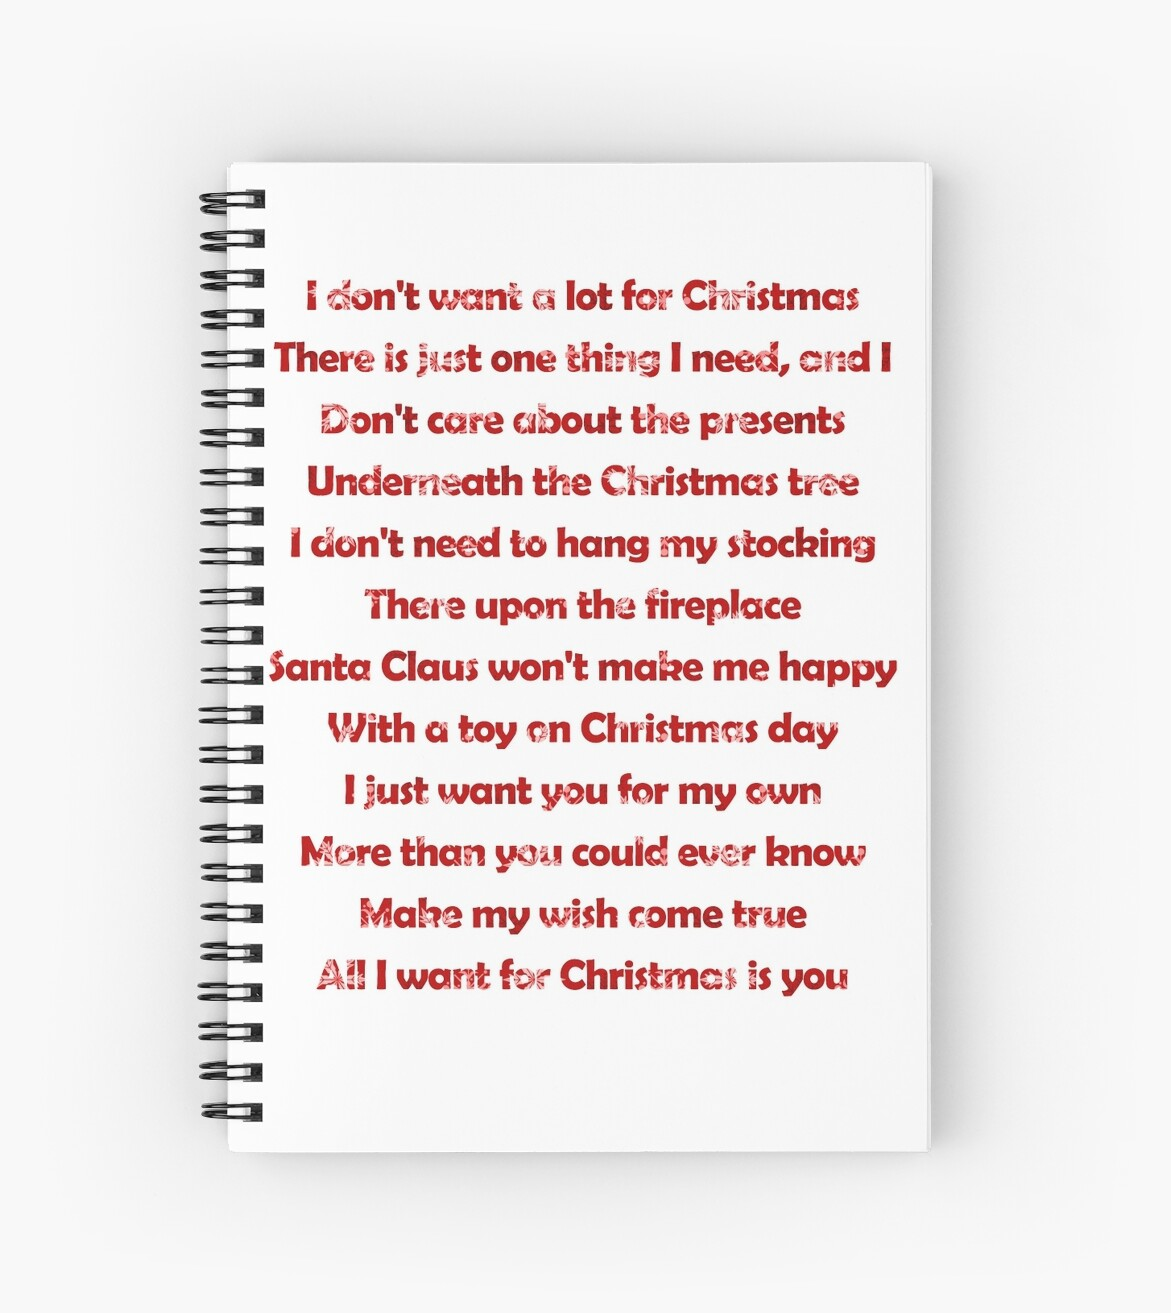 Mariah Carey - All I Want For Christmas Is You Lyrics\